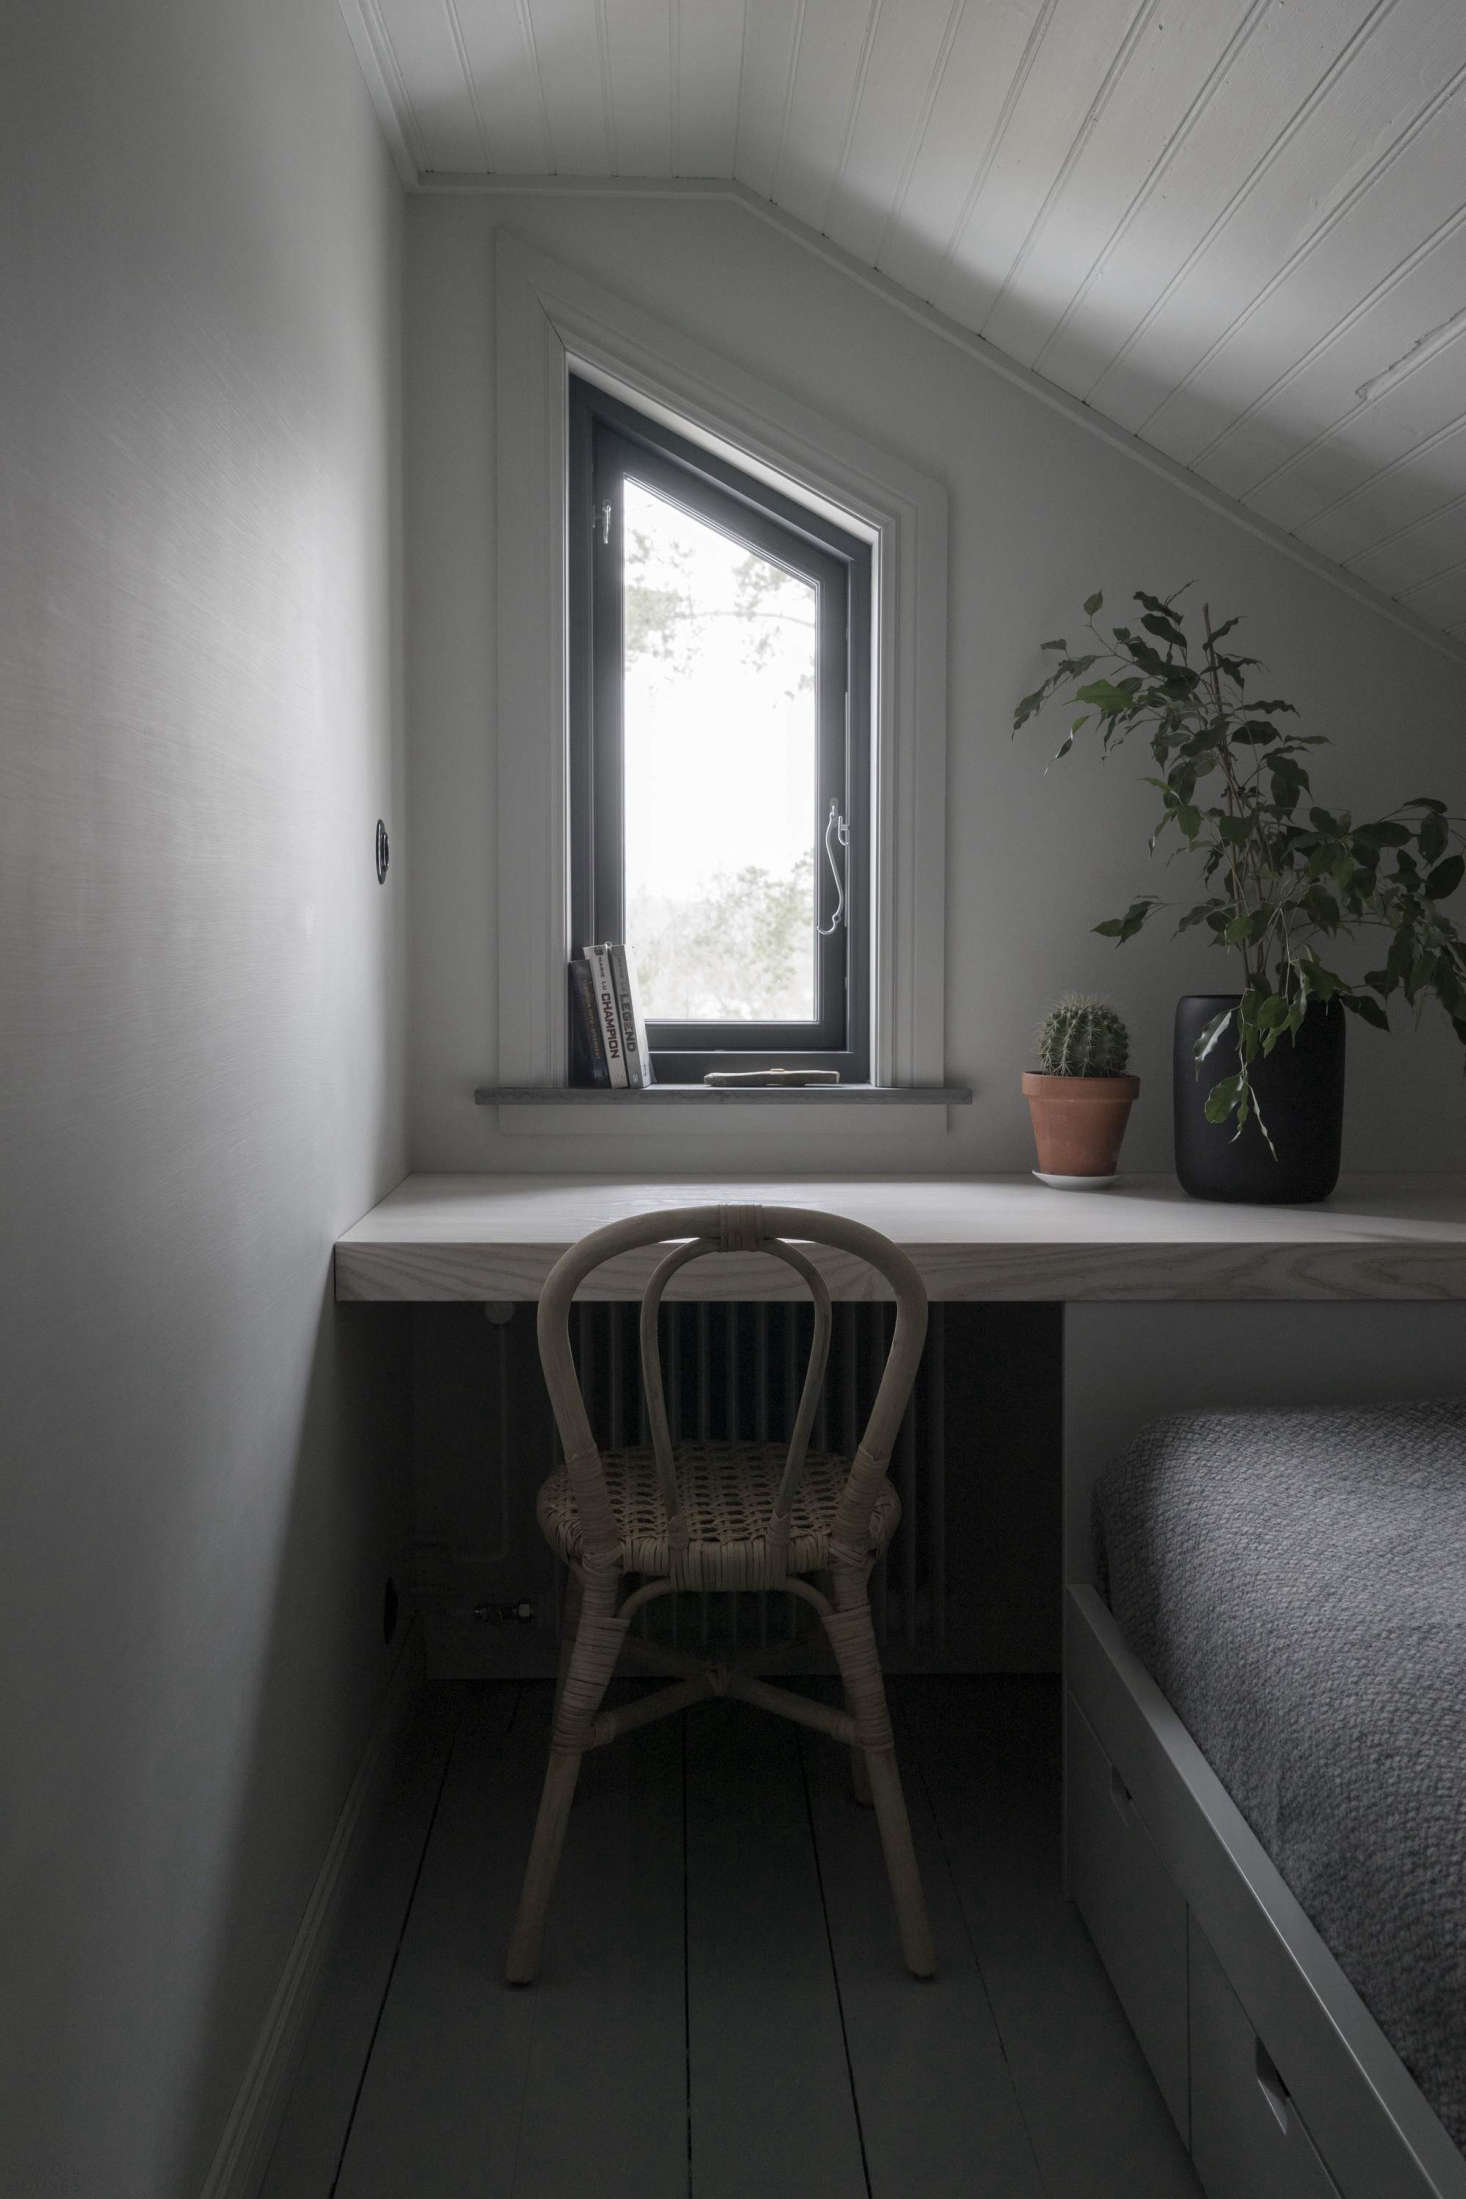 In a tiny bedroom, the architects maximized the space by installing a built-in bed with drawers and inserting a simple desk under a sliver of a window.